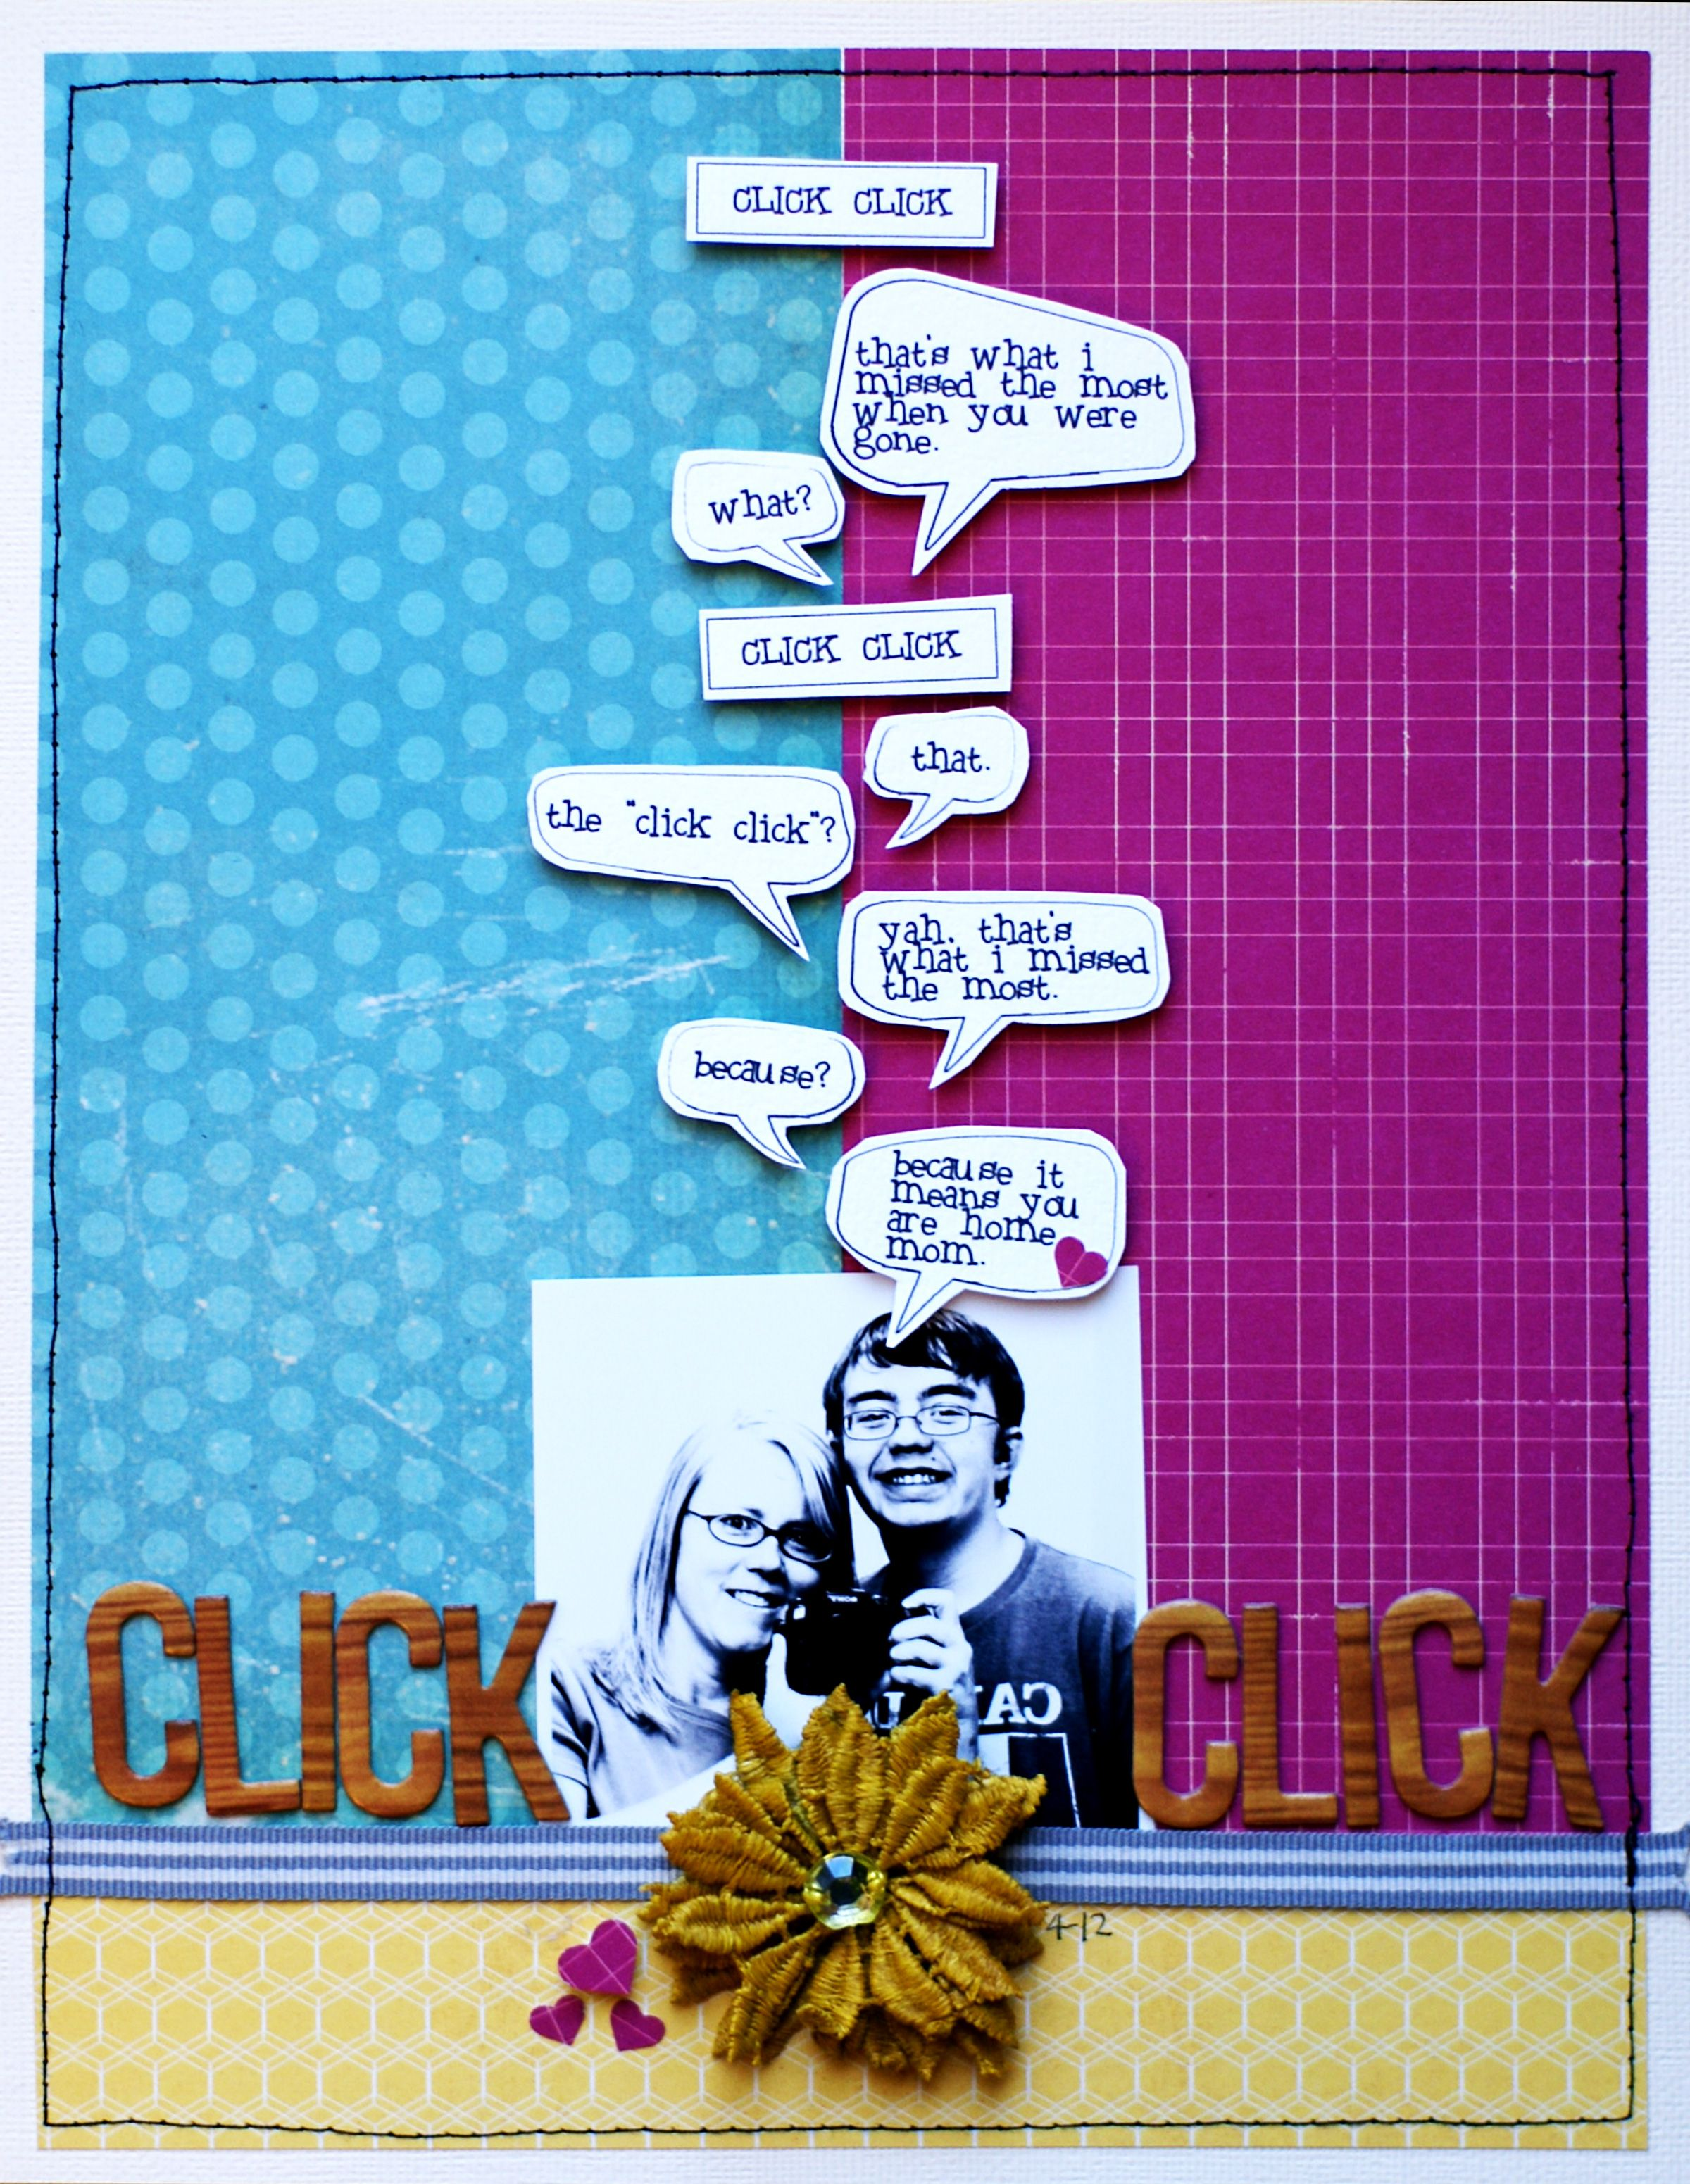 Talk bubbles are a trendy motif perfect for the scrapbook page